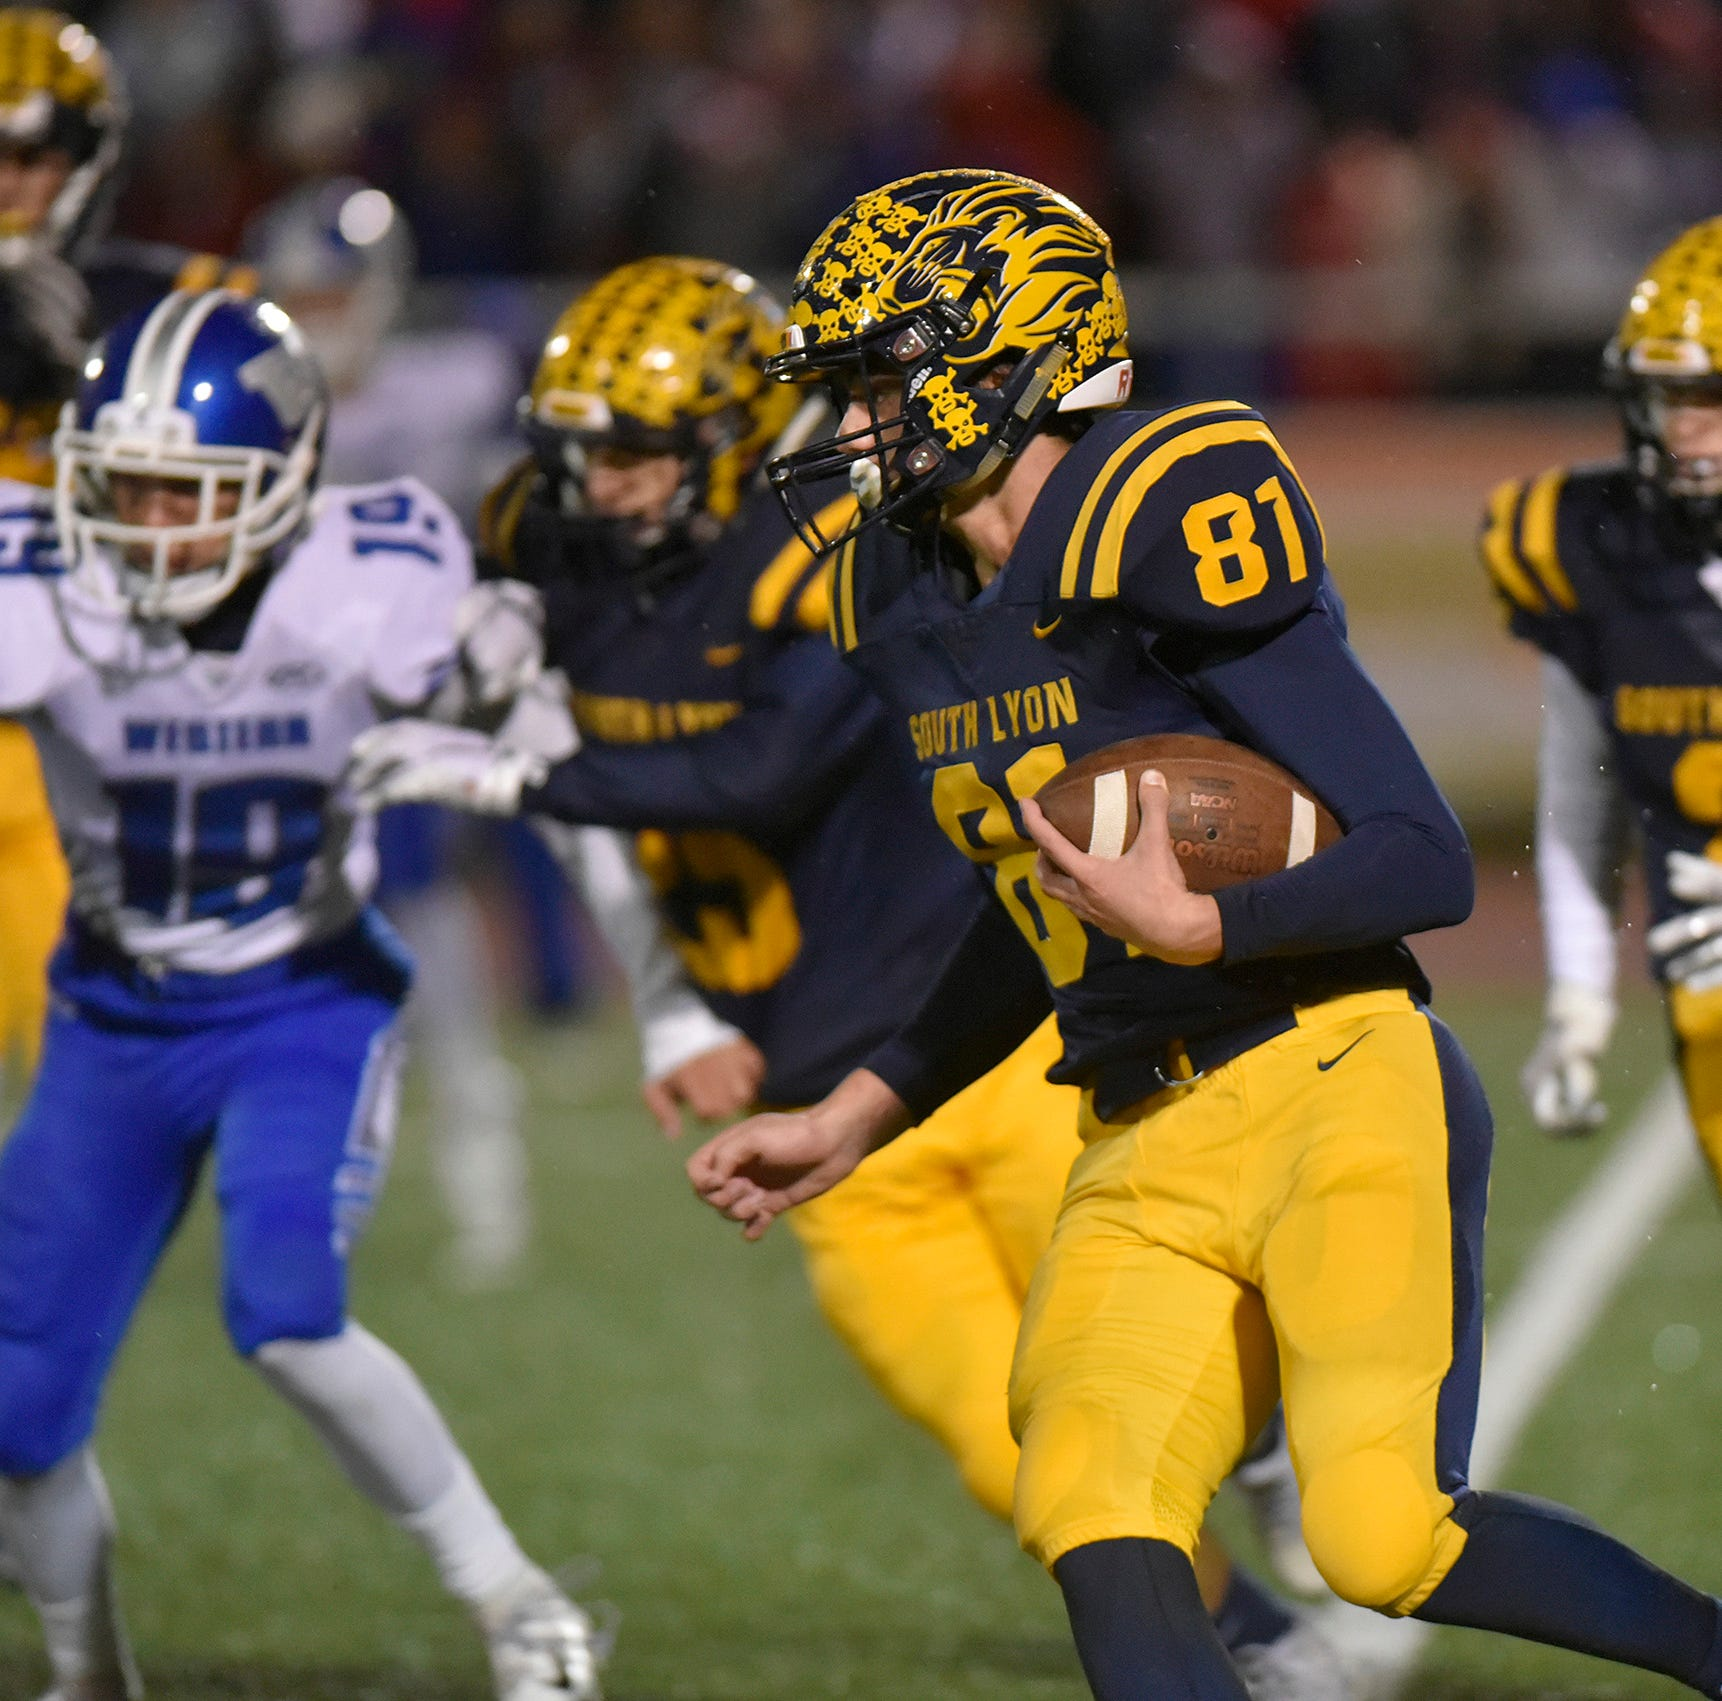 South Lyon retains No. 1 spot; Plymouth, S.L. East jump into HTL's Top-10 rankings